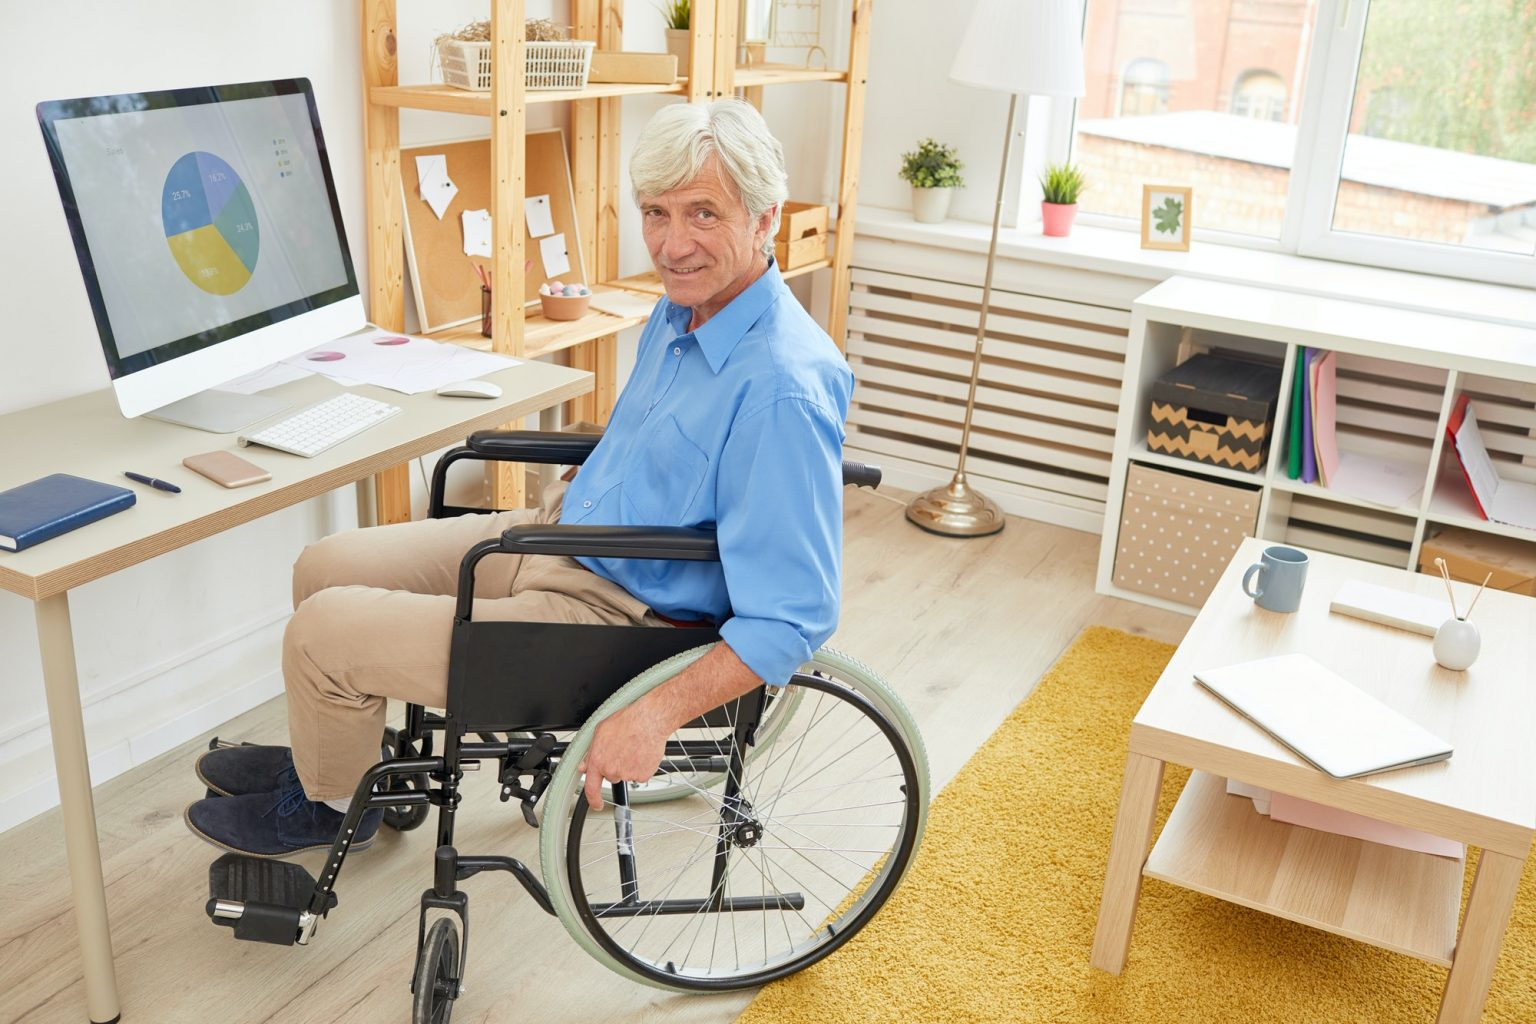 Disabled man working with graphics